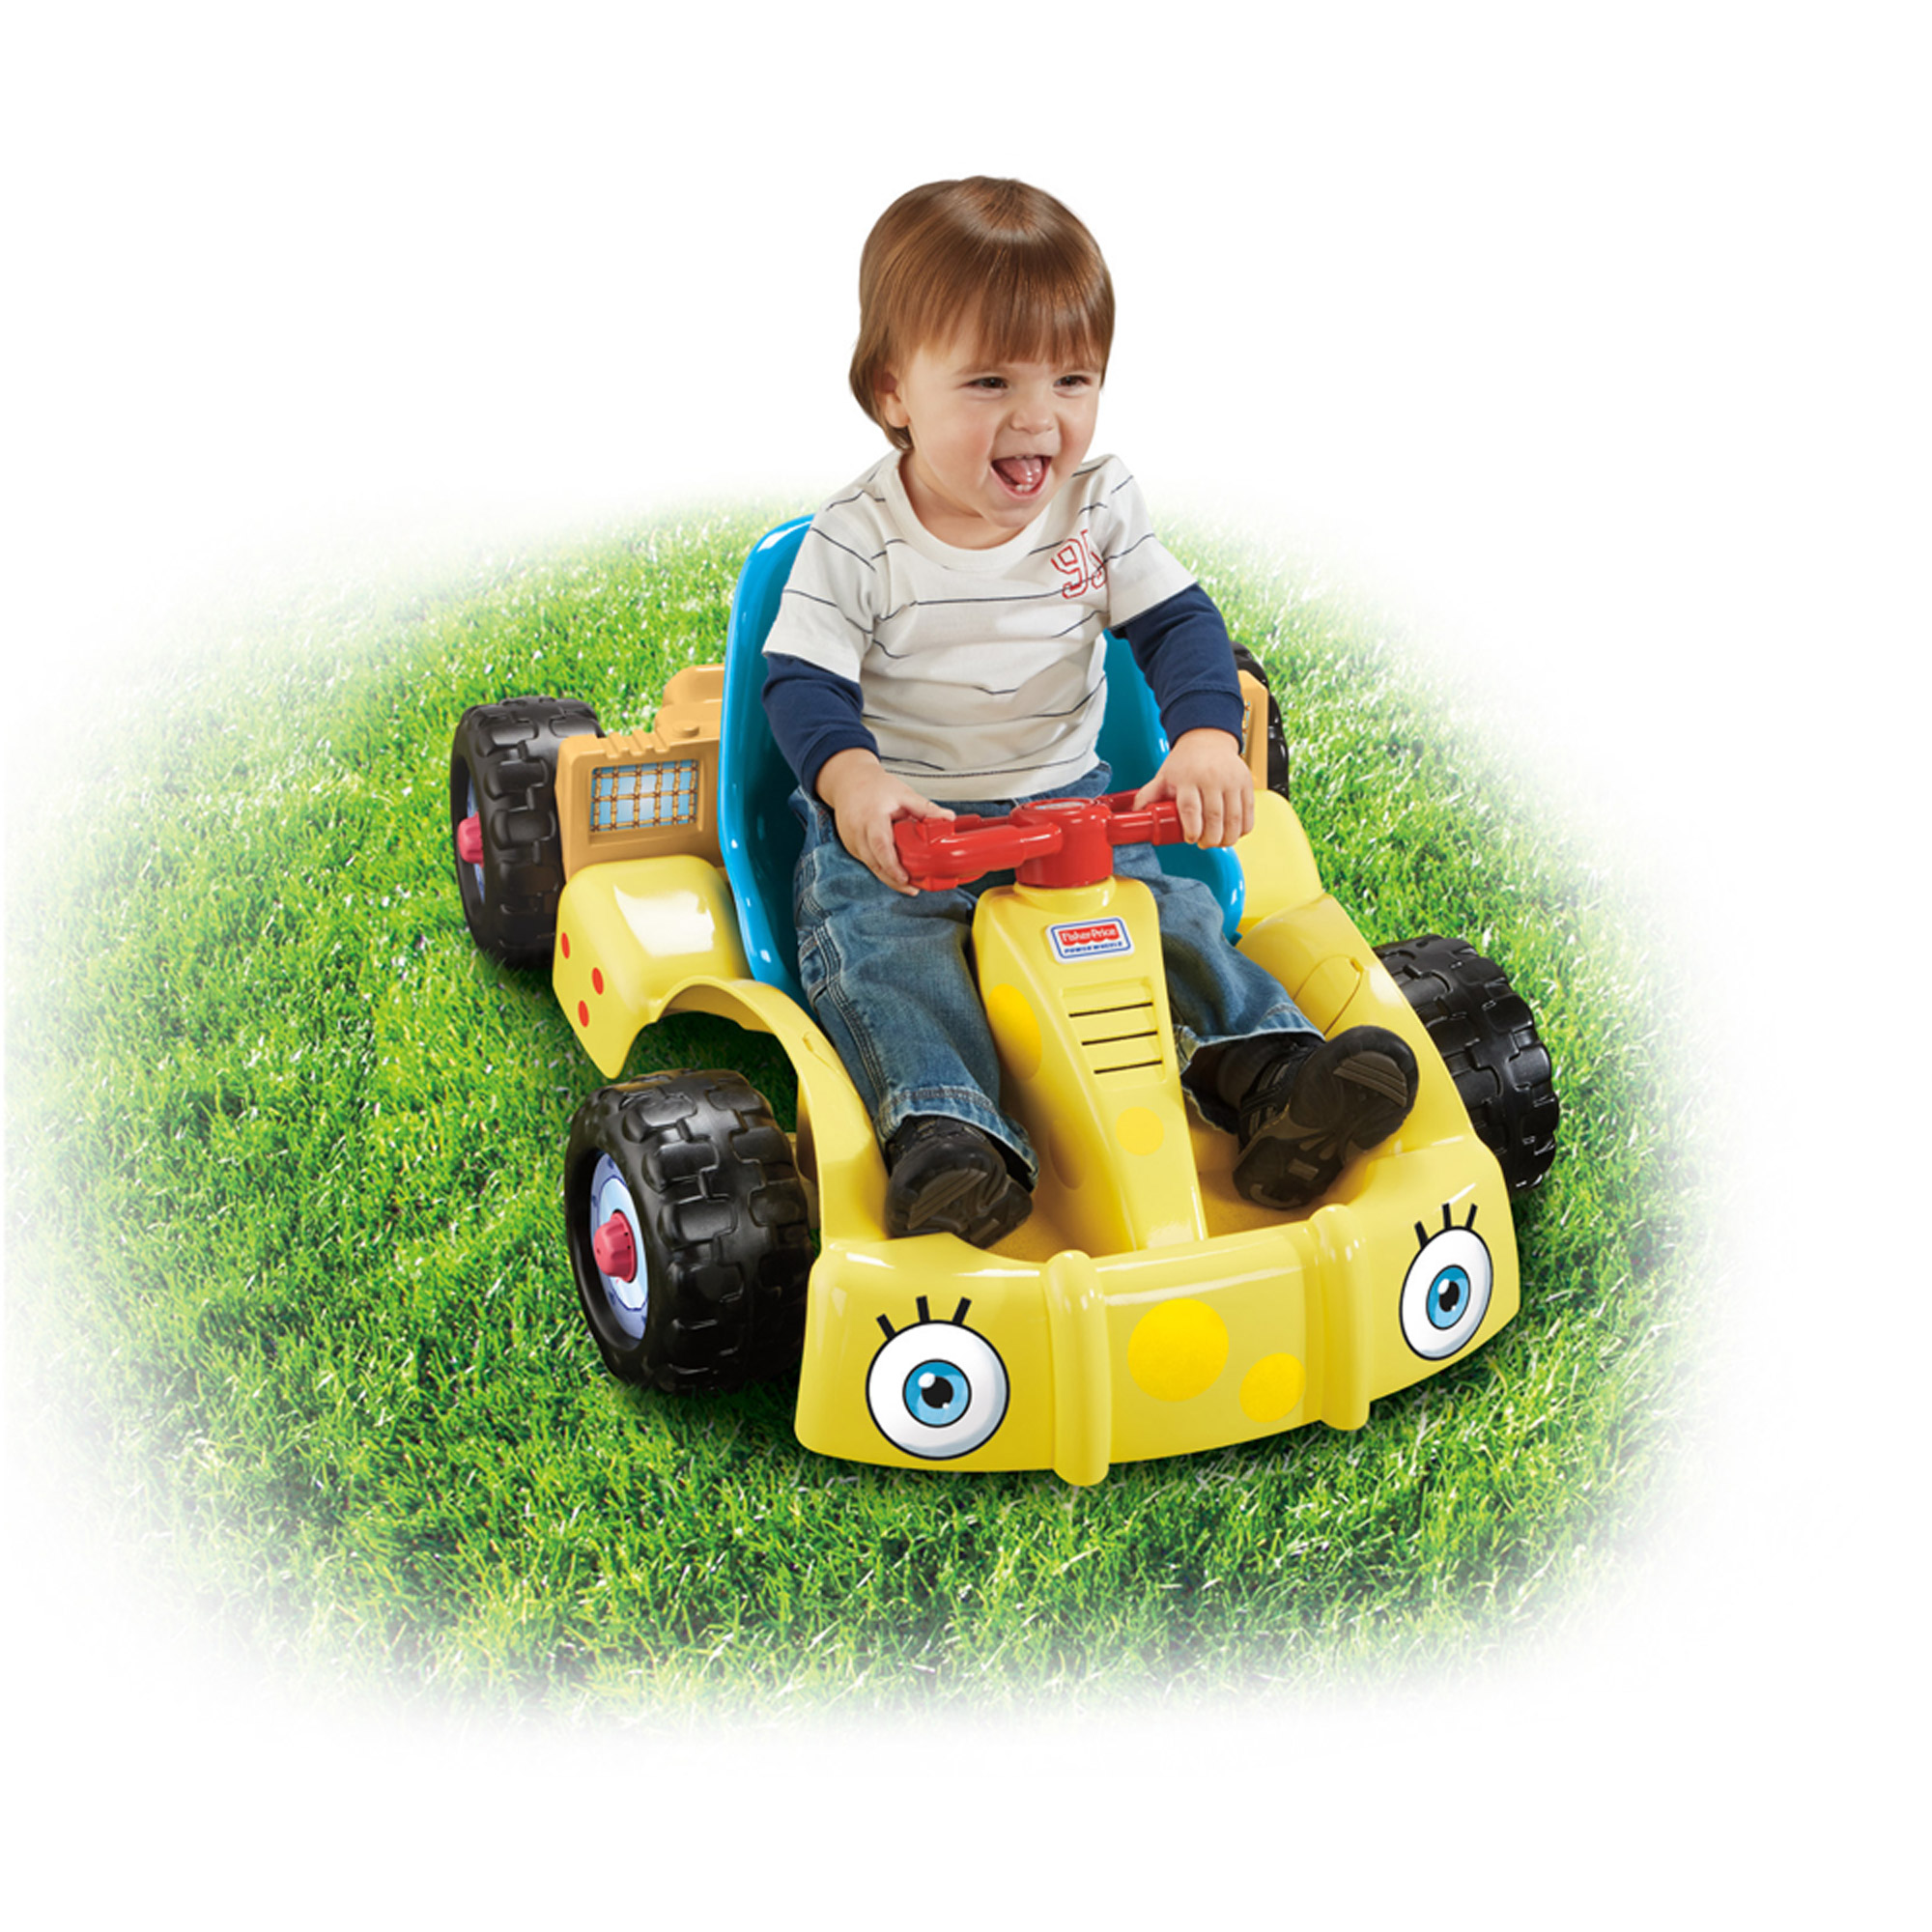 Fisher-Price Power Wheels Spongebob Squarepants Get Set Go! Kart